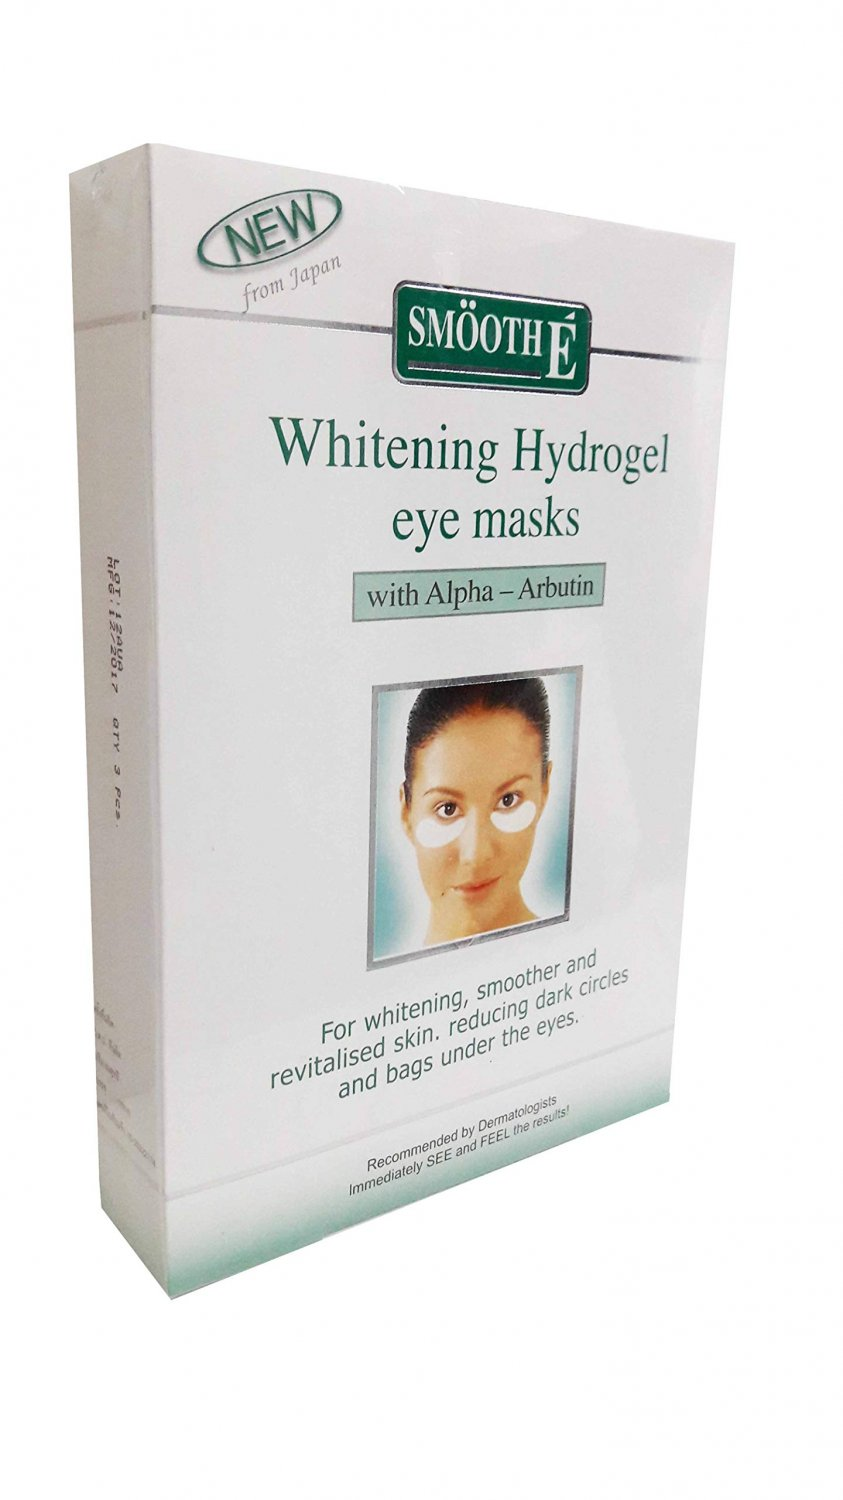 Smooth E Whitening Hydrogel Eye Masks with Alpha-arbutin, for Whitening,